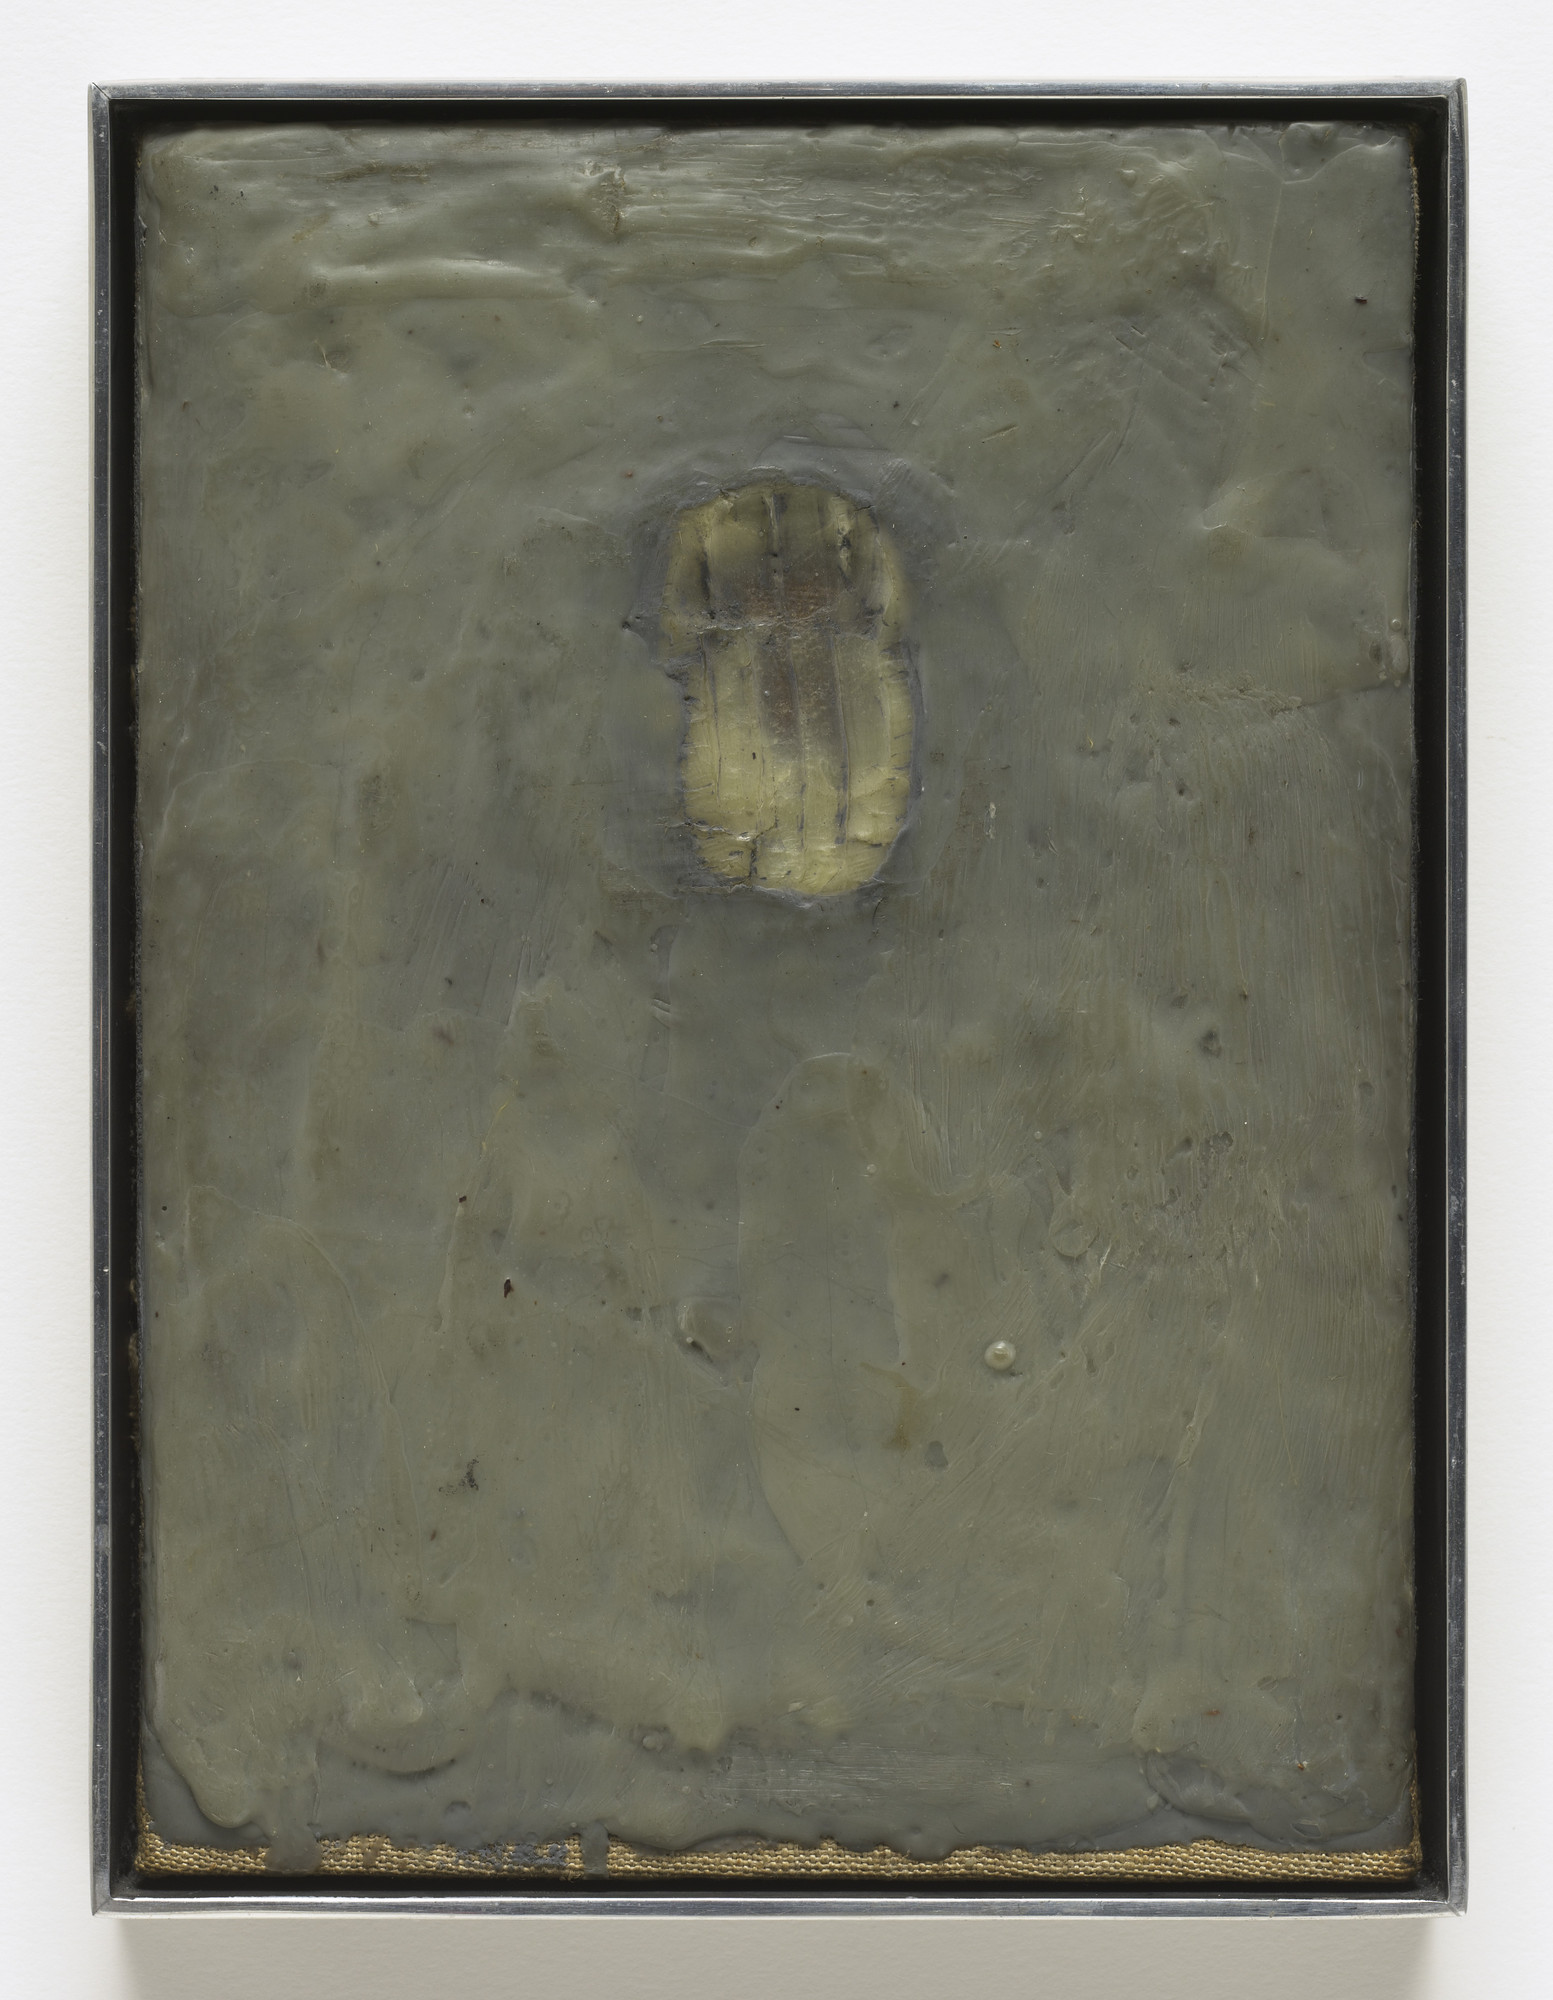 Jasper Johns. Painting Bitten by a Man. 1961